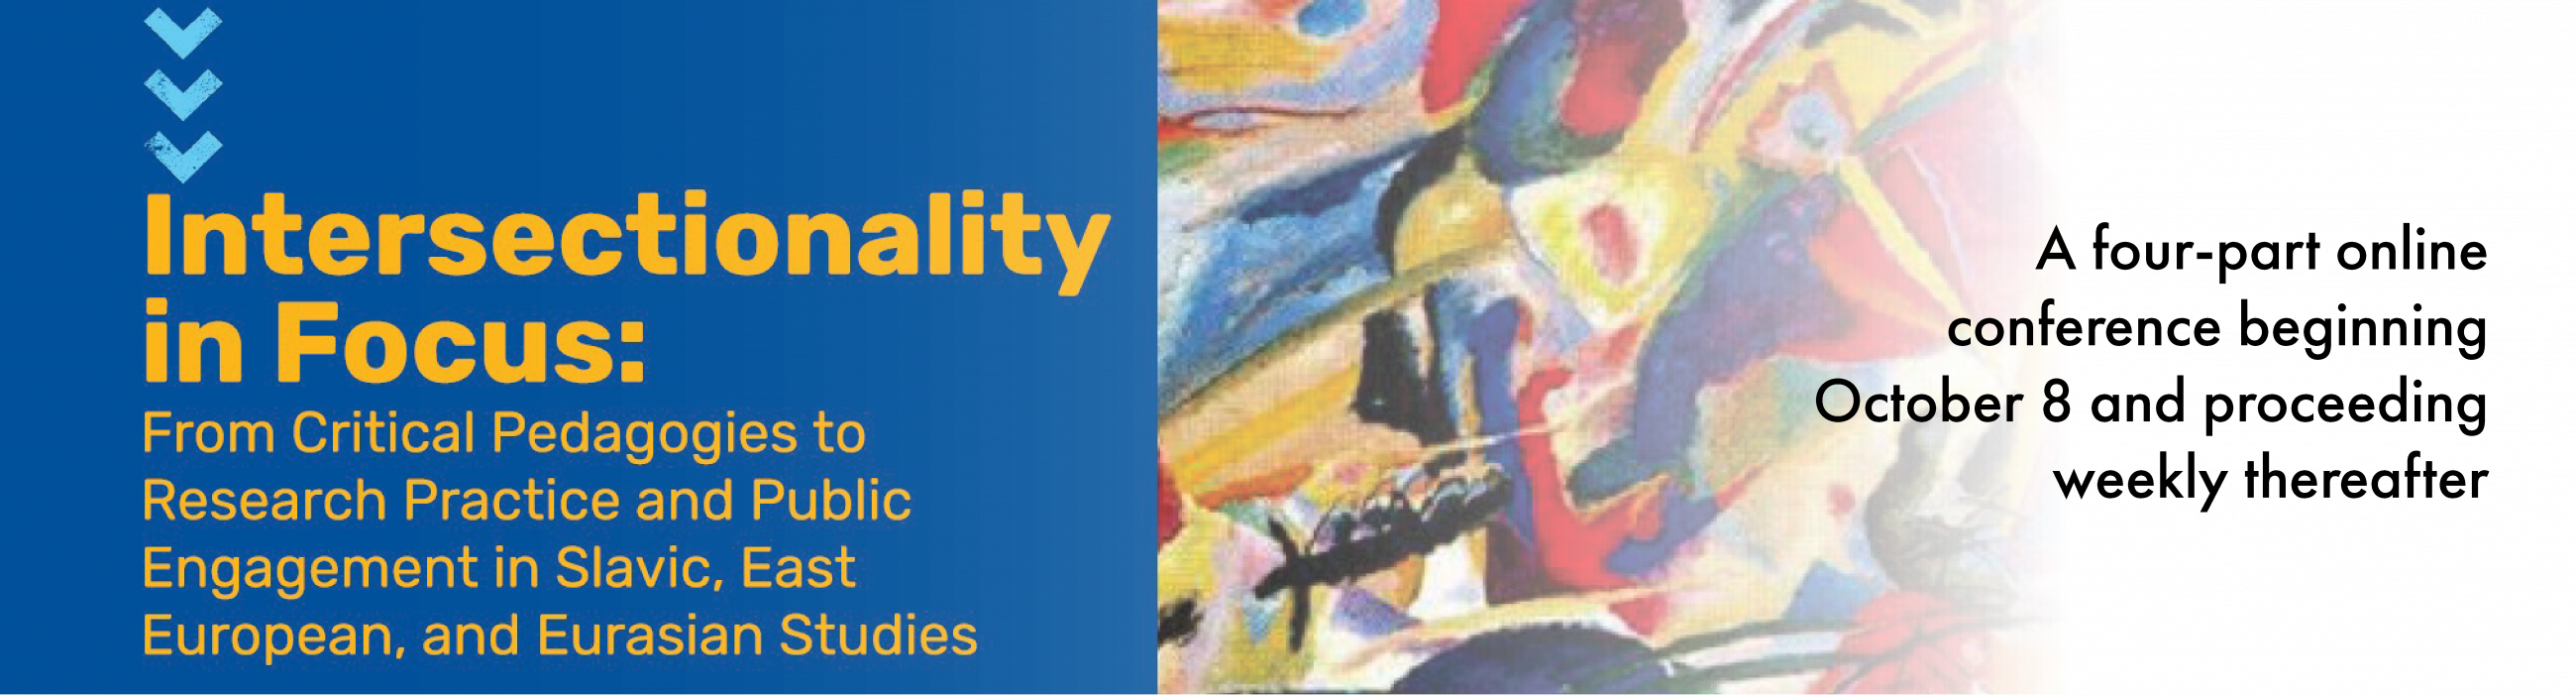 Intersectionality in Focus